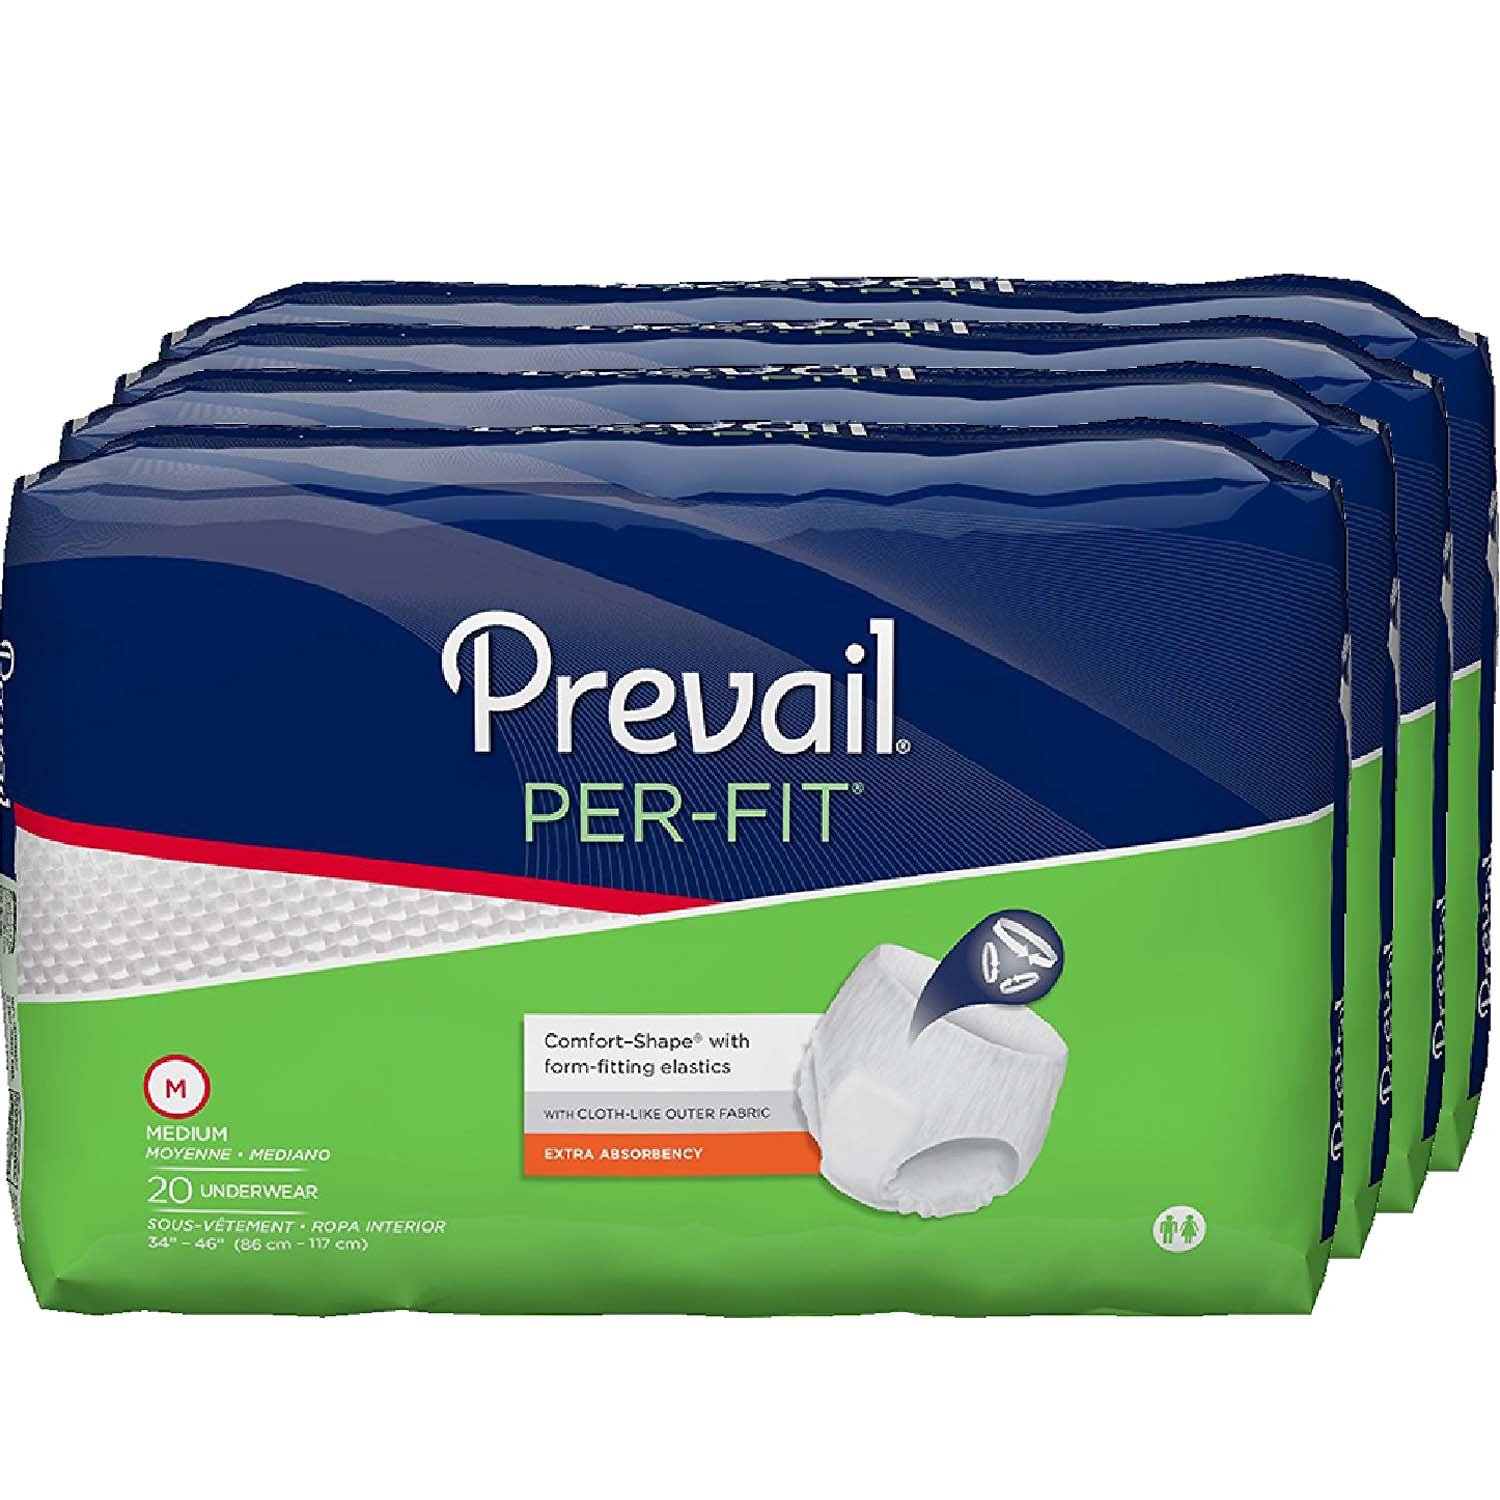 Prevail Per-Fit Extra Absorbency Incontinence Underwear, Medium, 20-Count (Pack